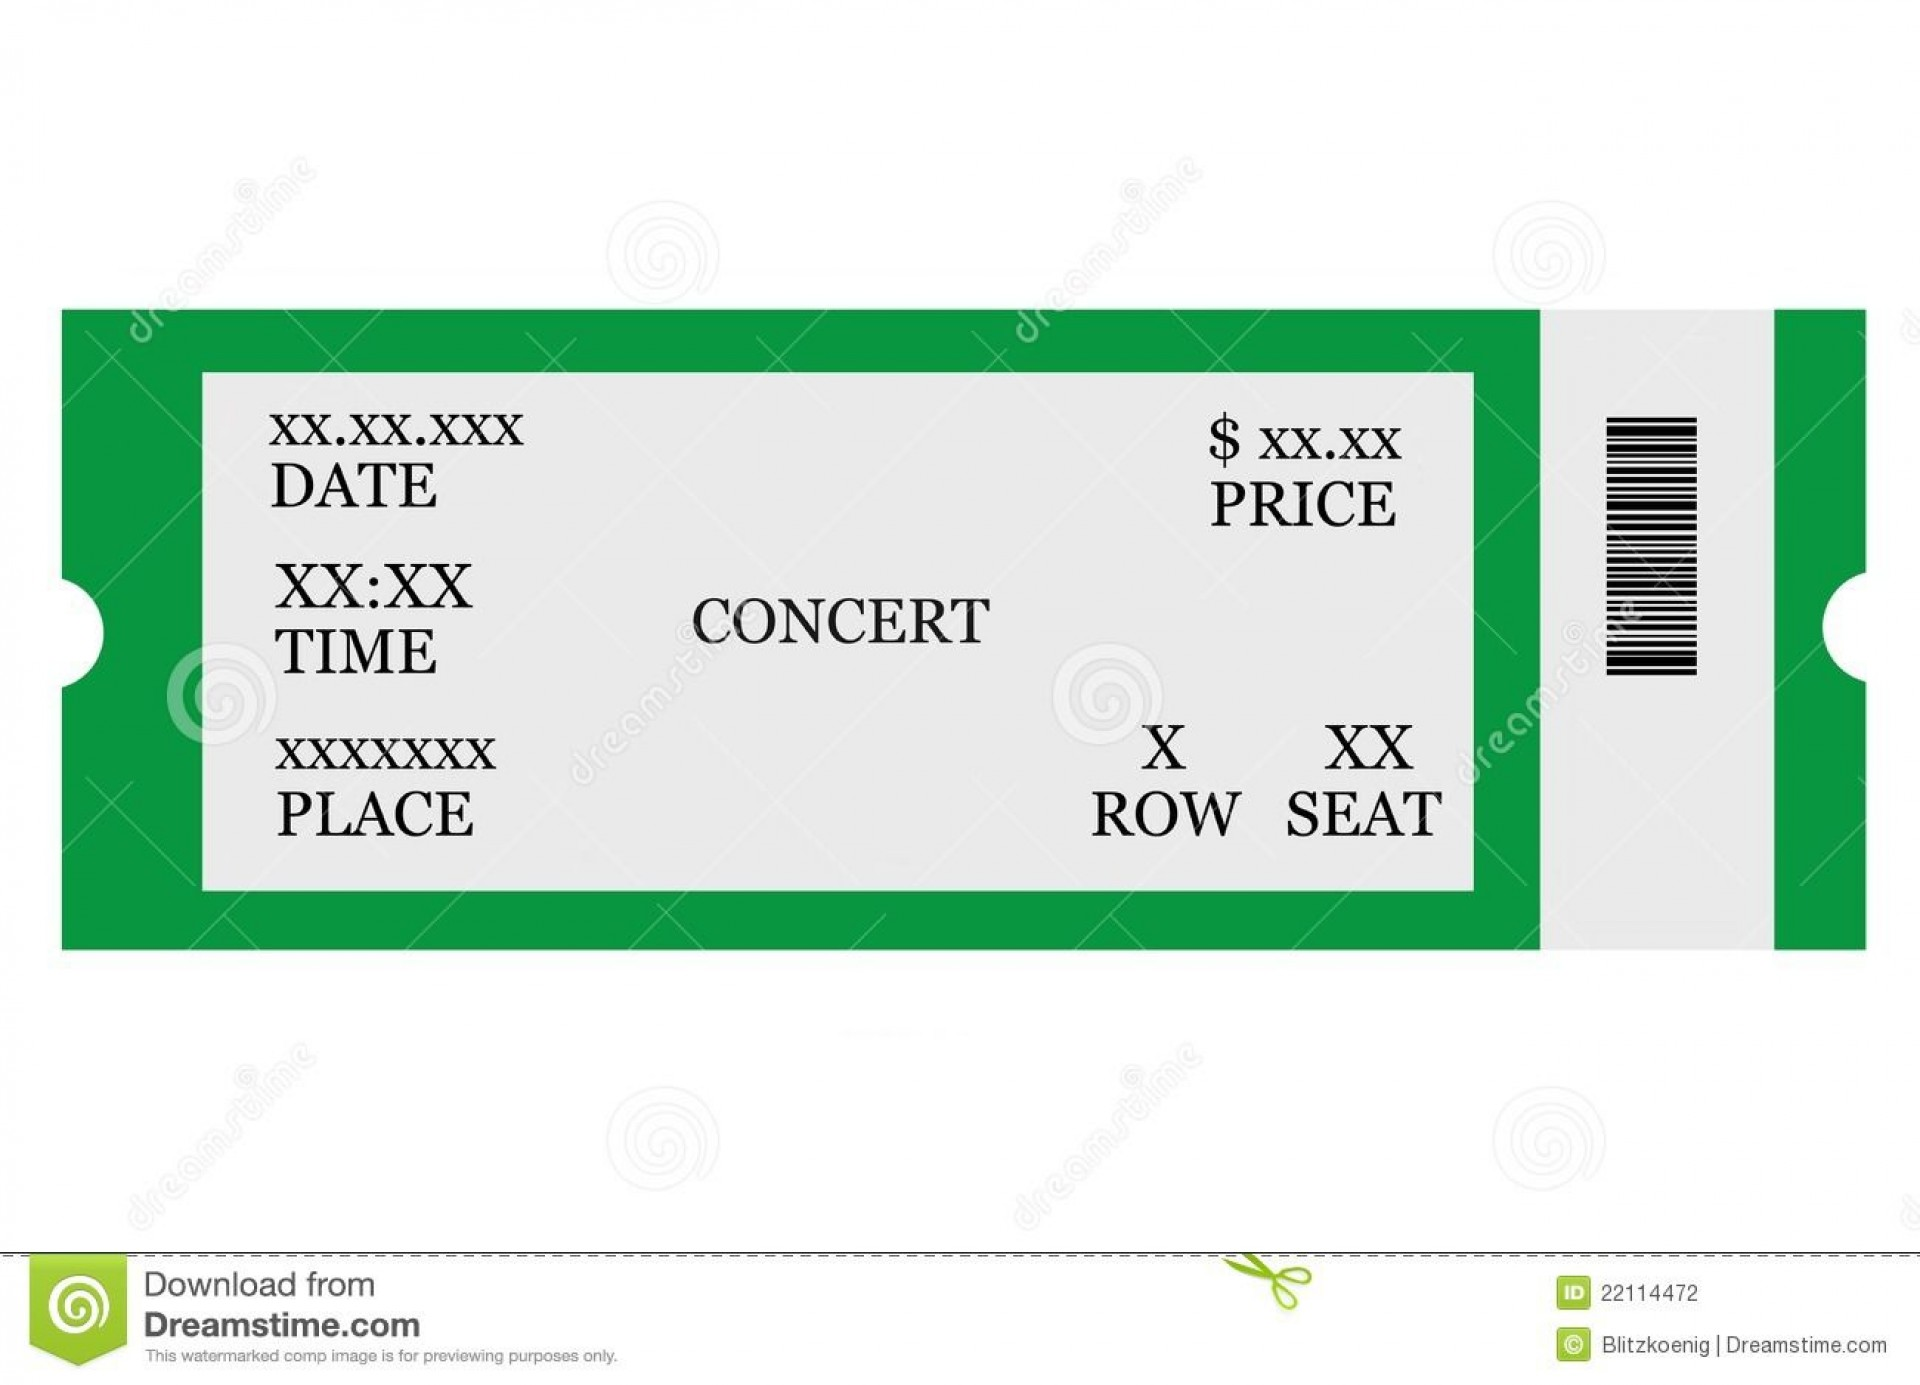 008 Fearsome Concert Ticket Template Free Printable Design  Gift1920